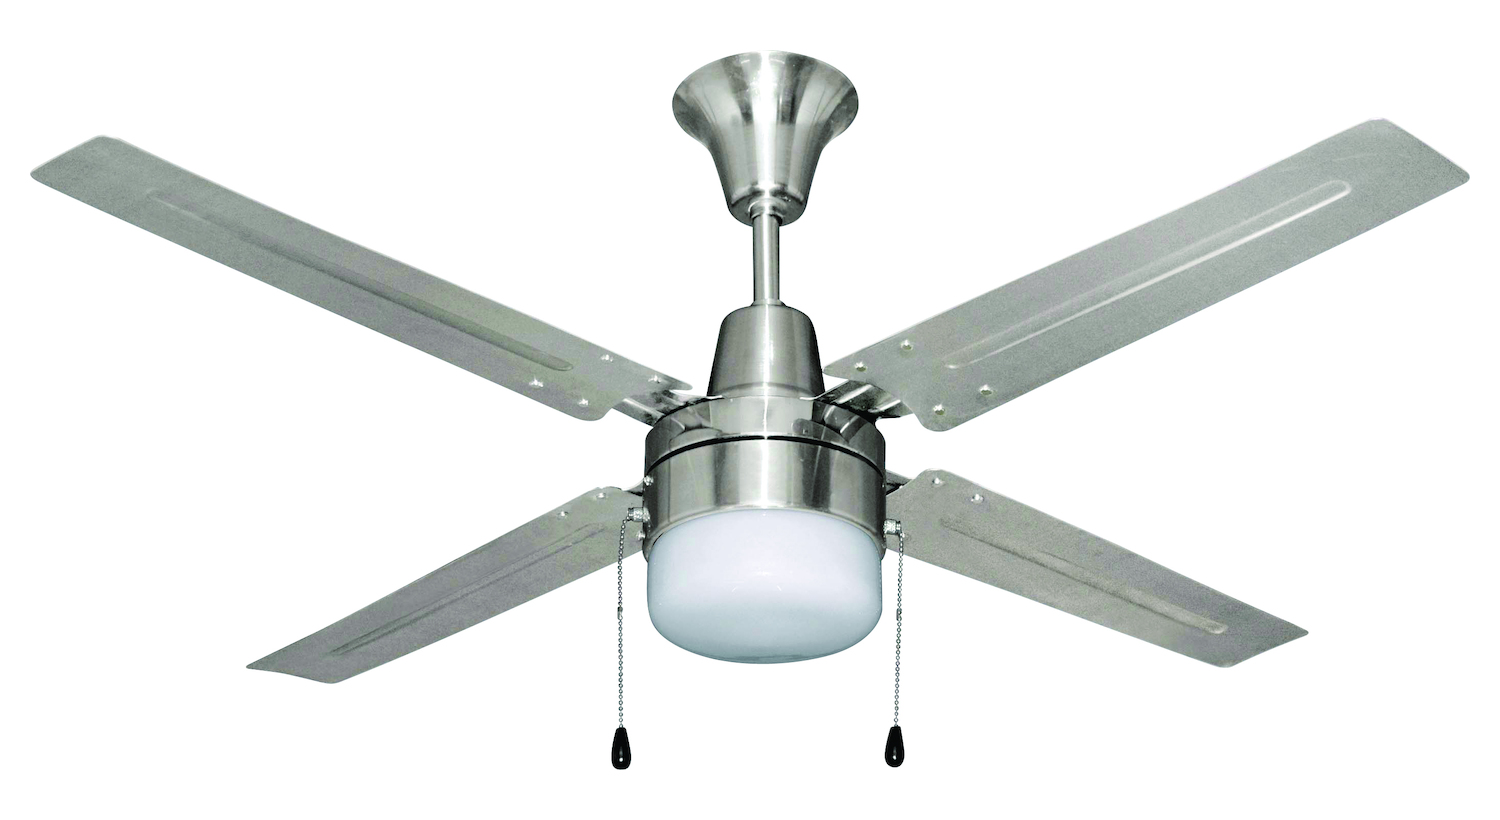 Chrome Ceiling Fans Without Lights Craftmade Brushed Chrome Finish Ceiling Fan With Light Kit